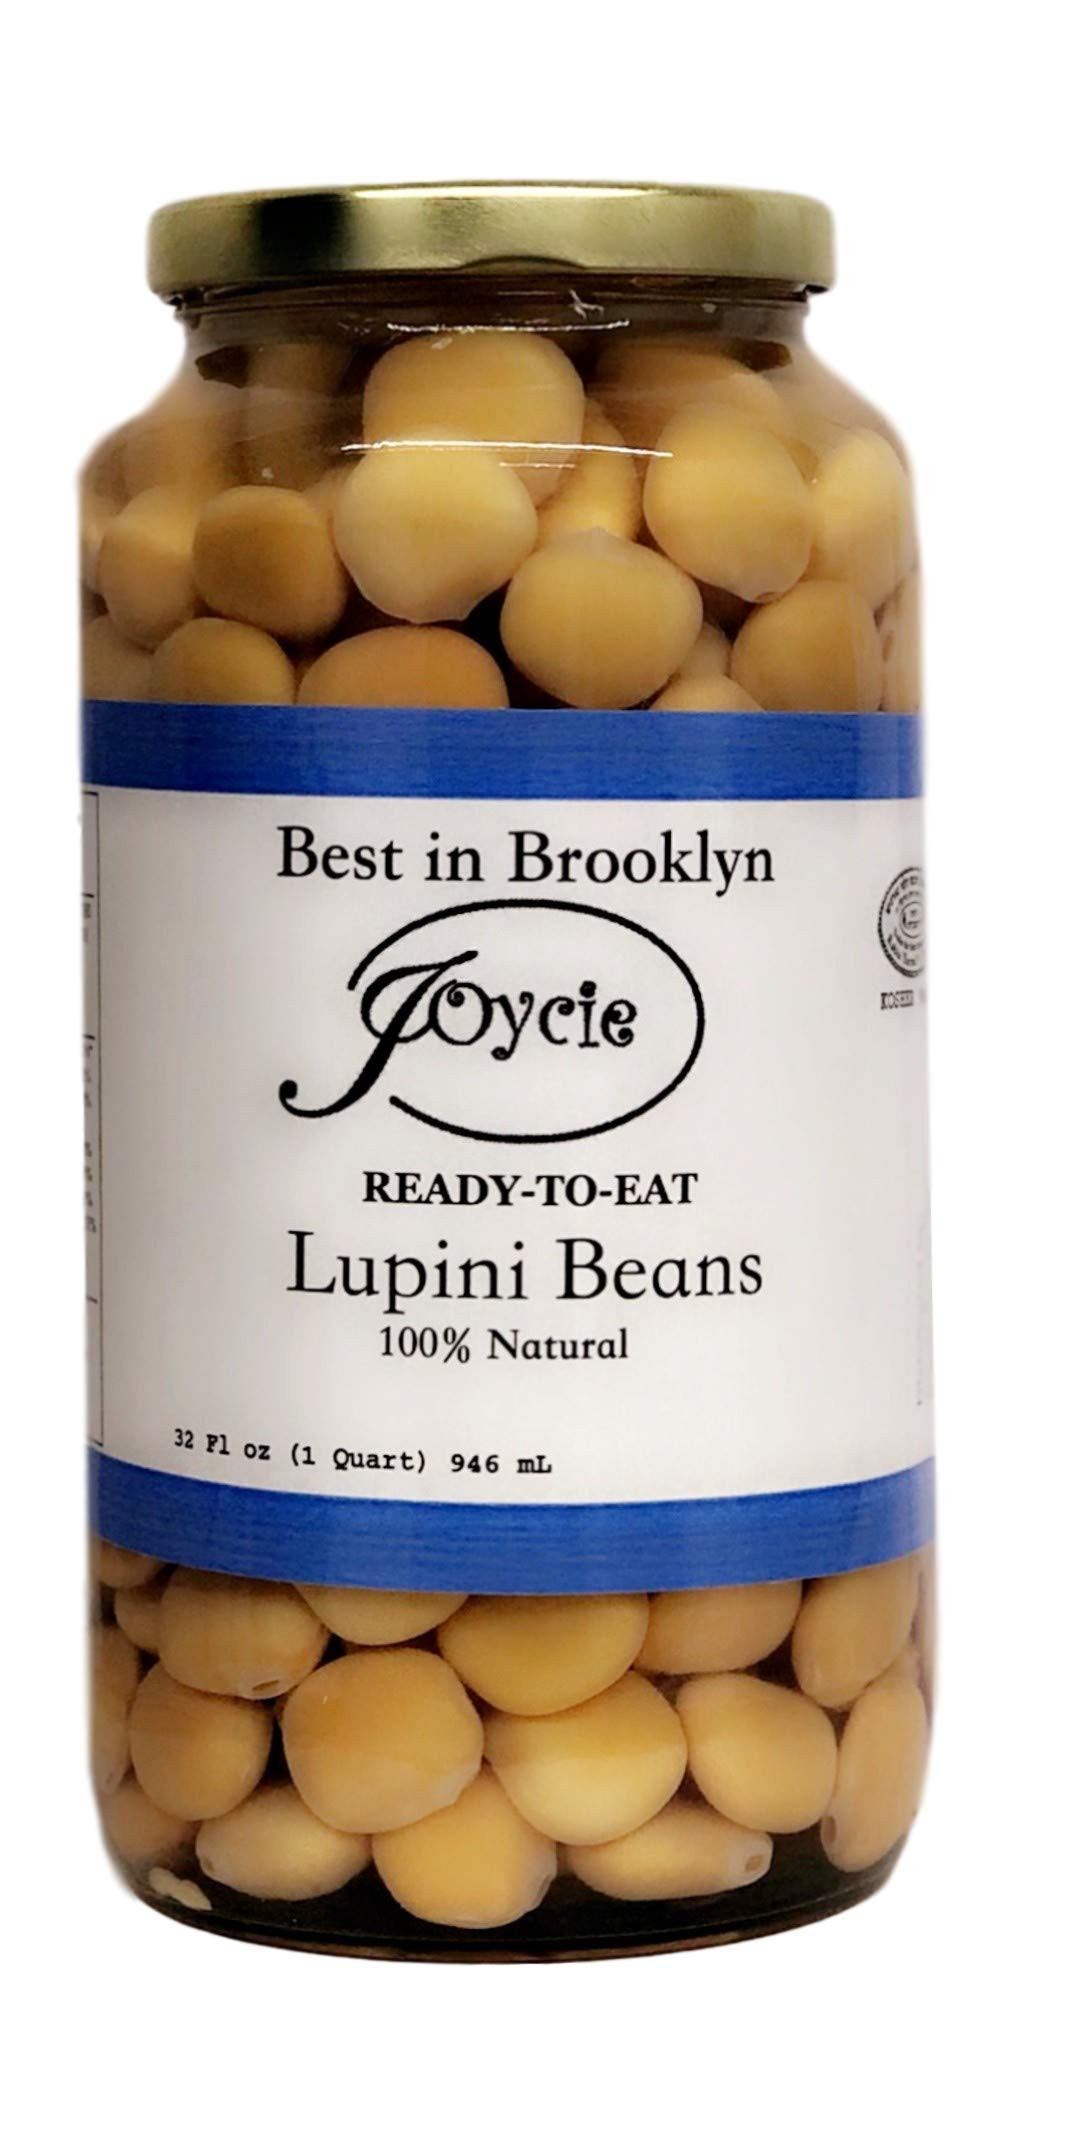 Joycie Ready To Eat Lupini Beans 32 Oz Pack of 3 by Joycie